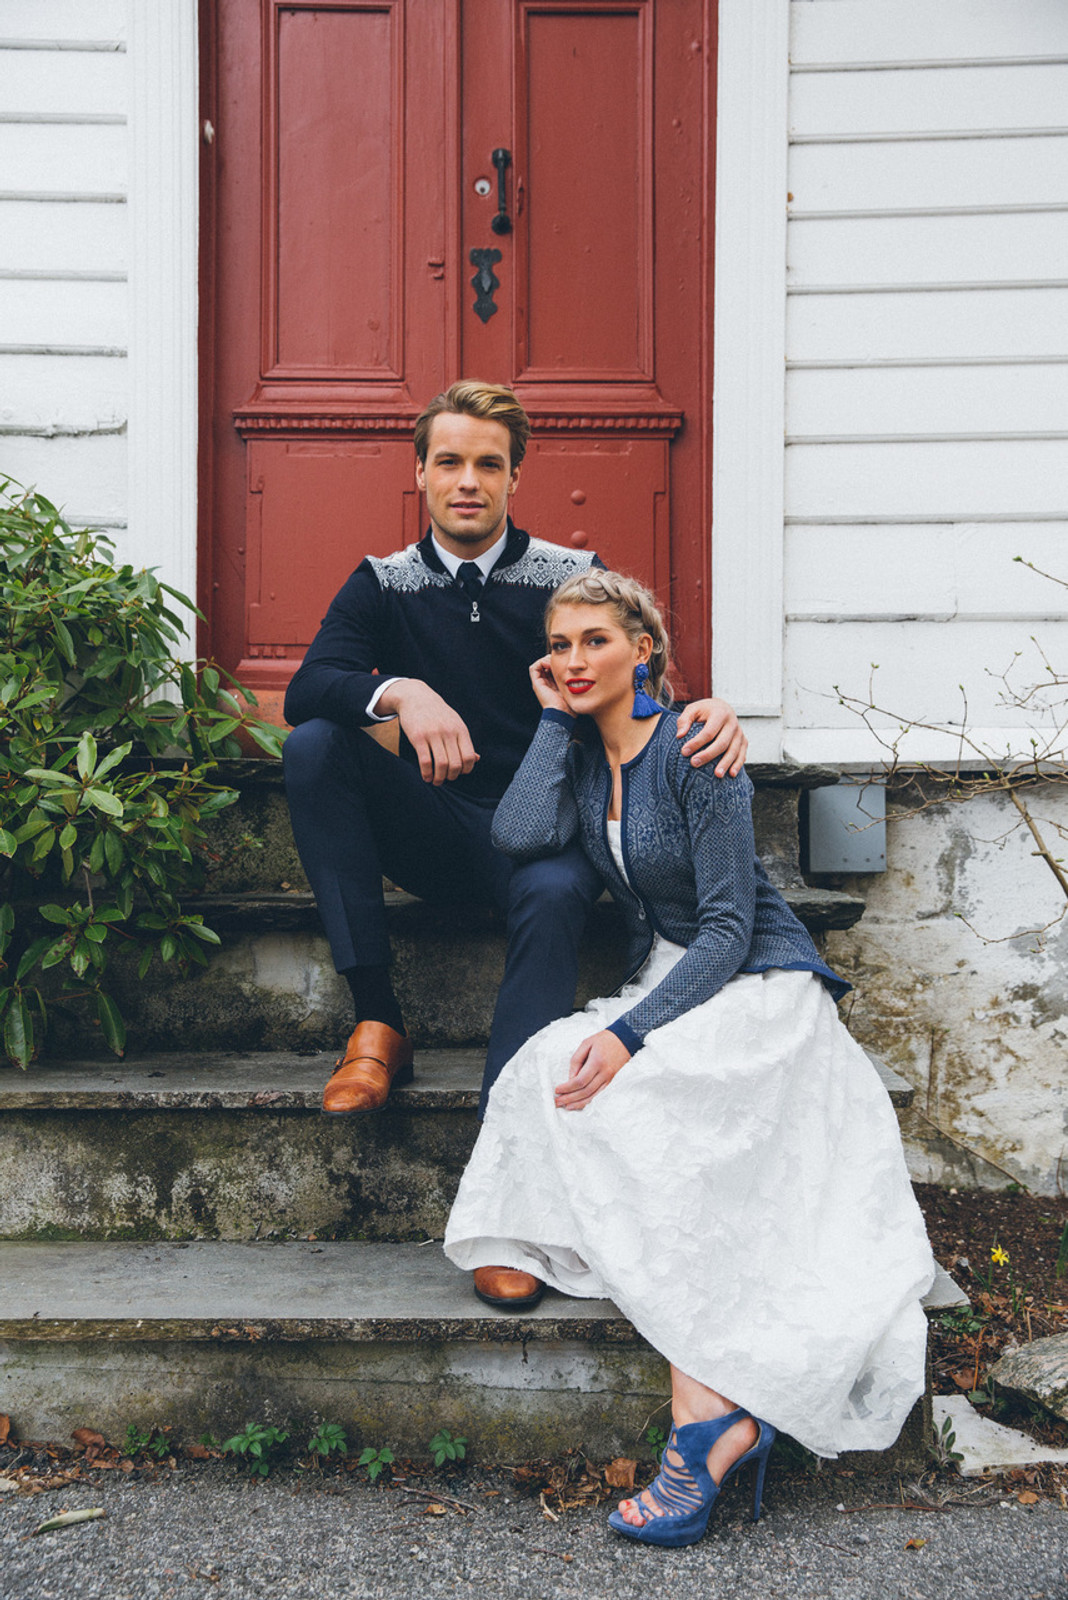 Man and woman in front of door wearing Dale of Norway mens' Fiemme sweater in in Navy/Raspberry/Orange Peel/Peacock/Off White, 93421-C, and Sigrid ladies cardigan in Navy/Off White/Indigo, 82071-C